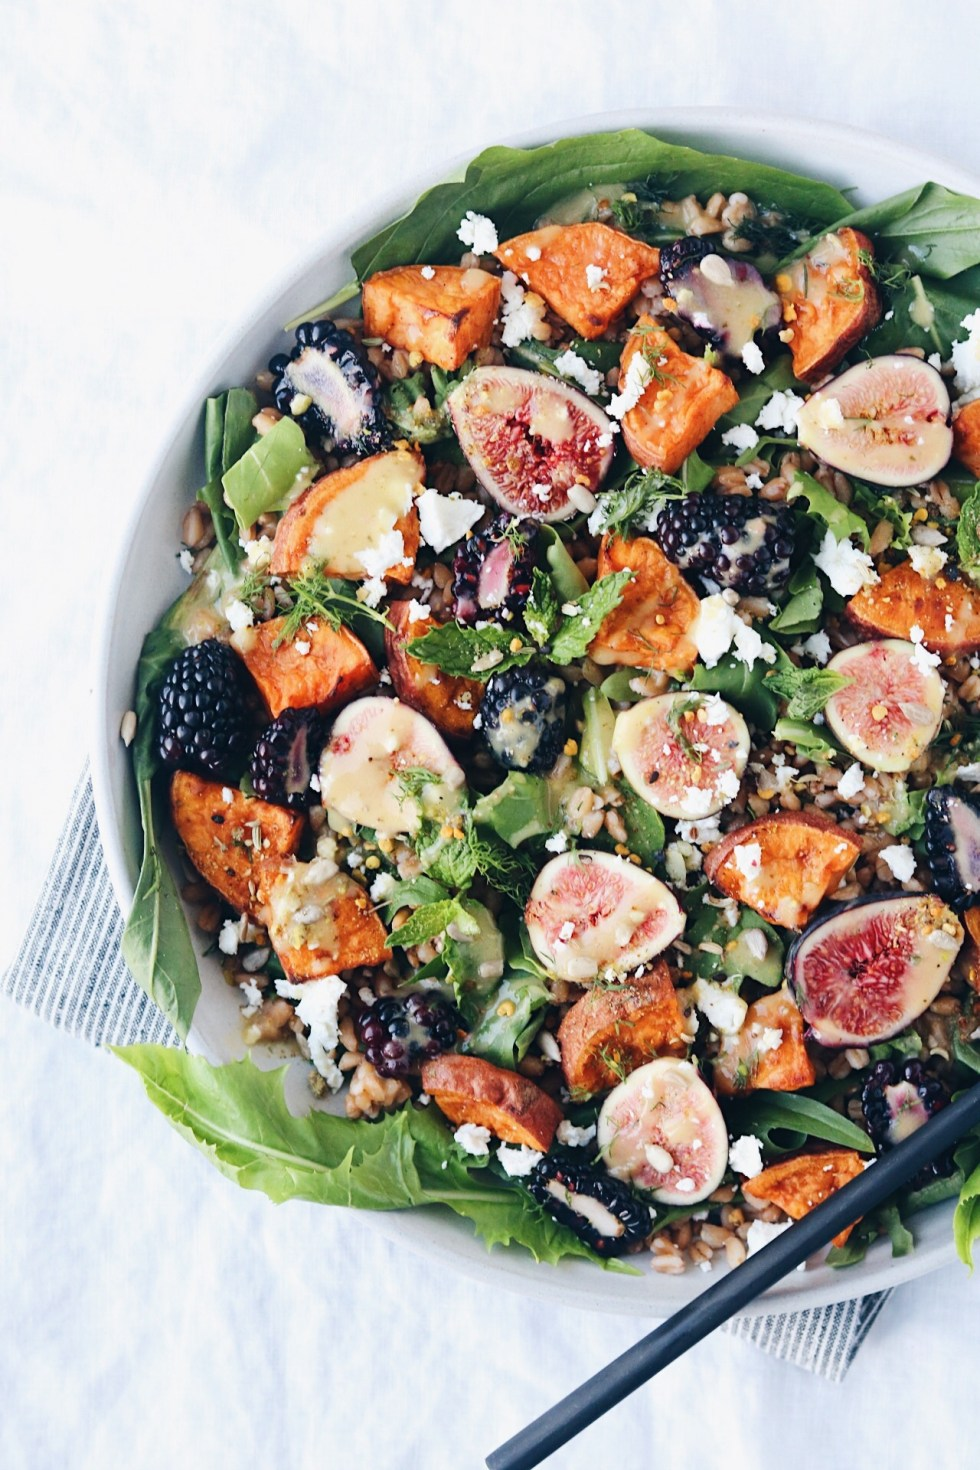 Late Summer Salad with Roasted Shallot Dressing